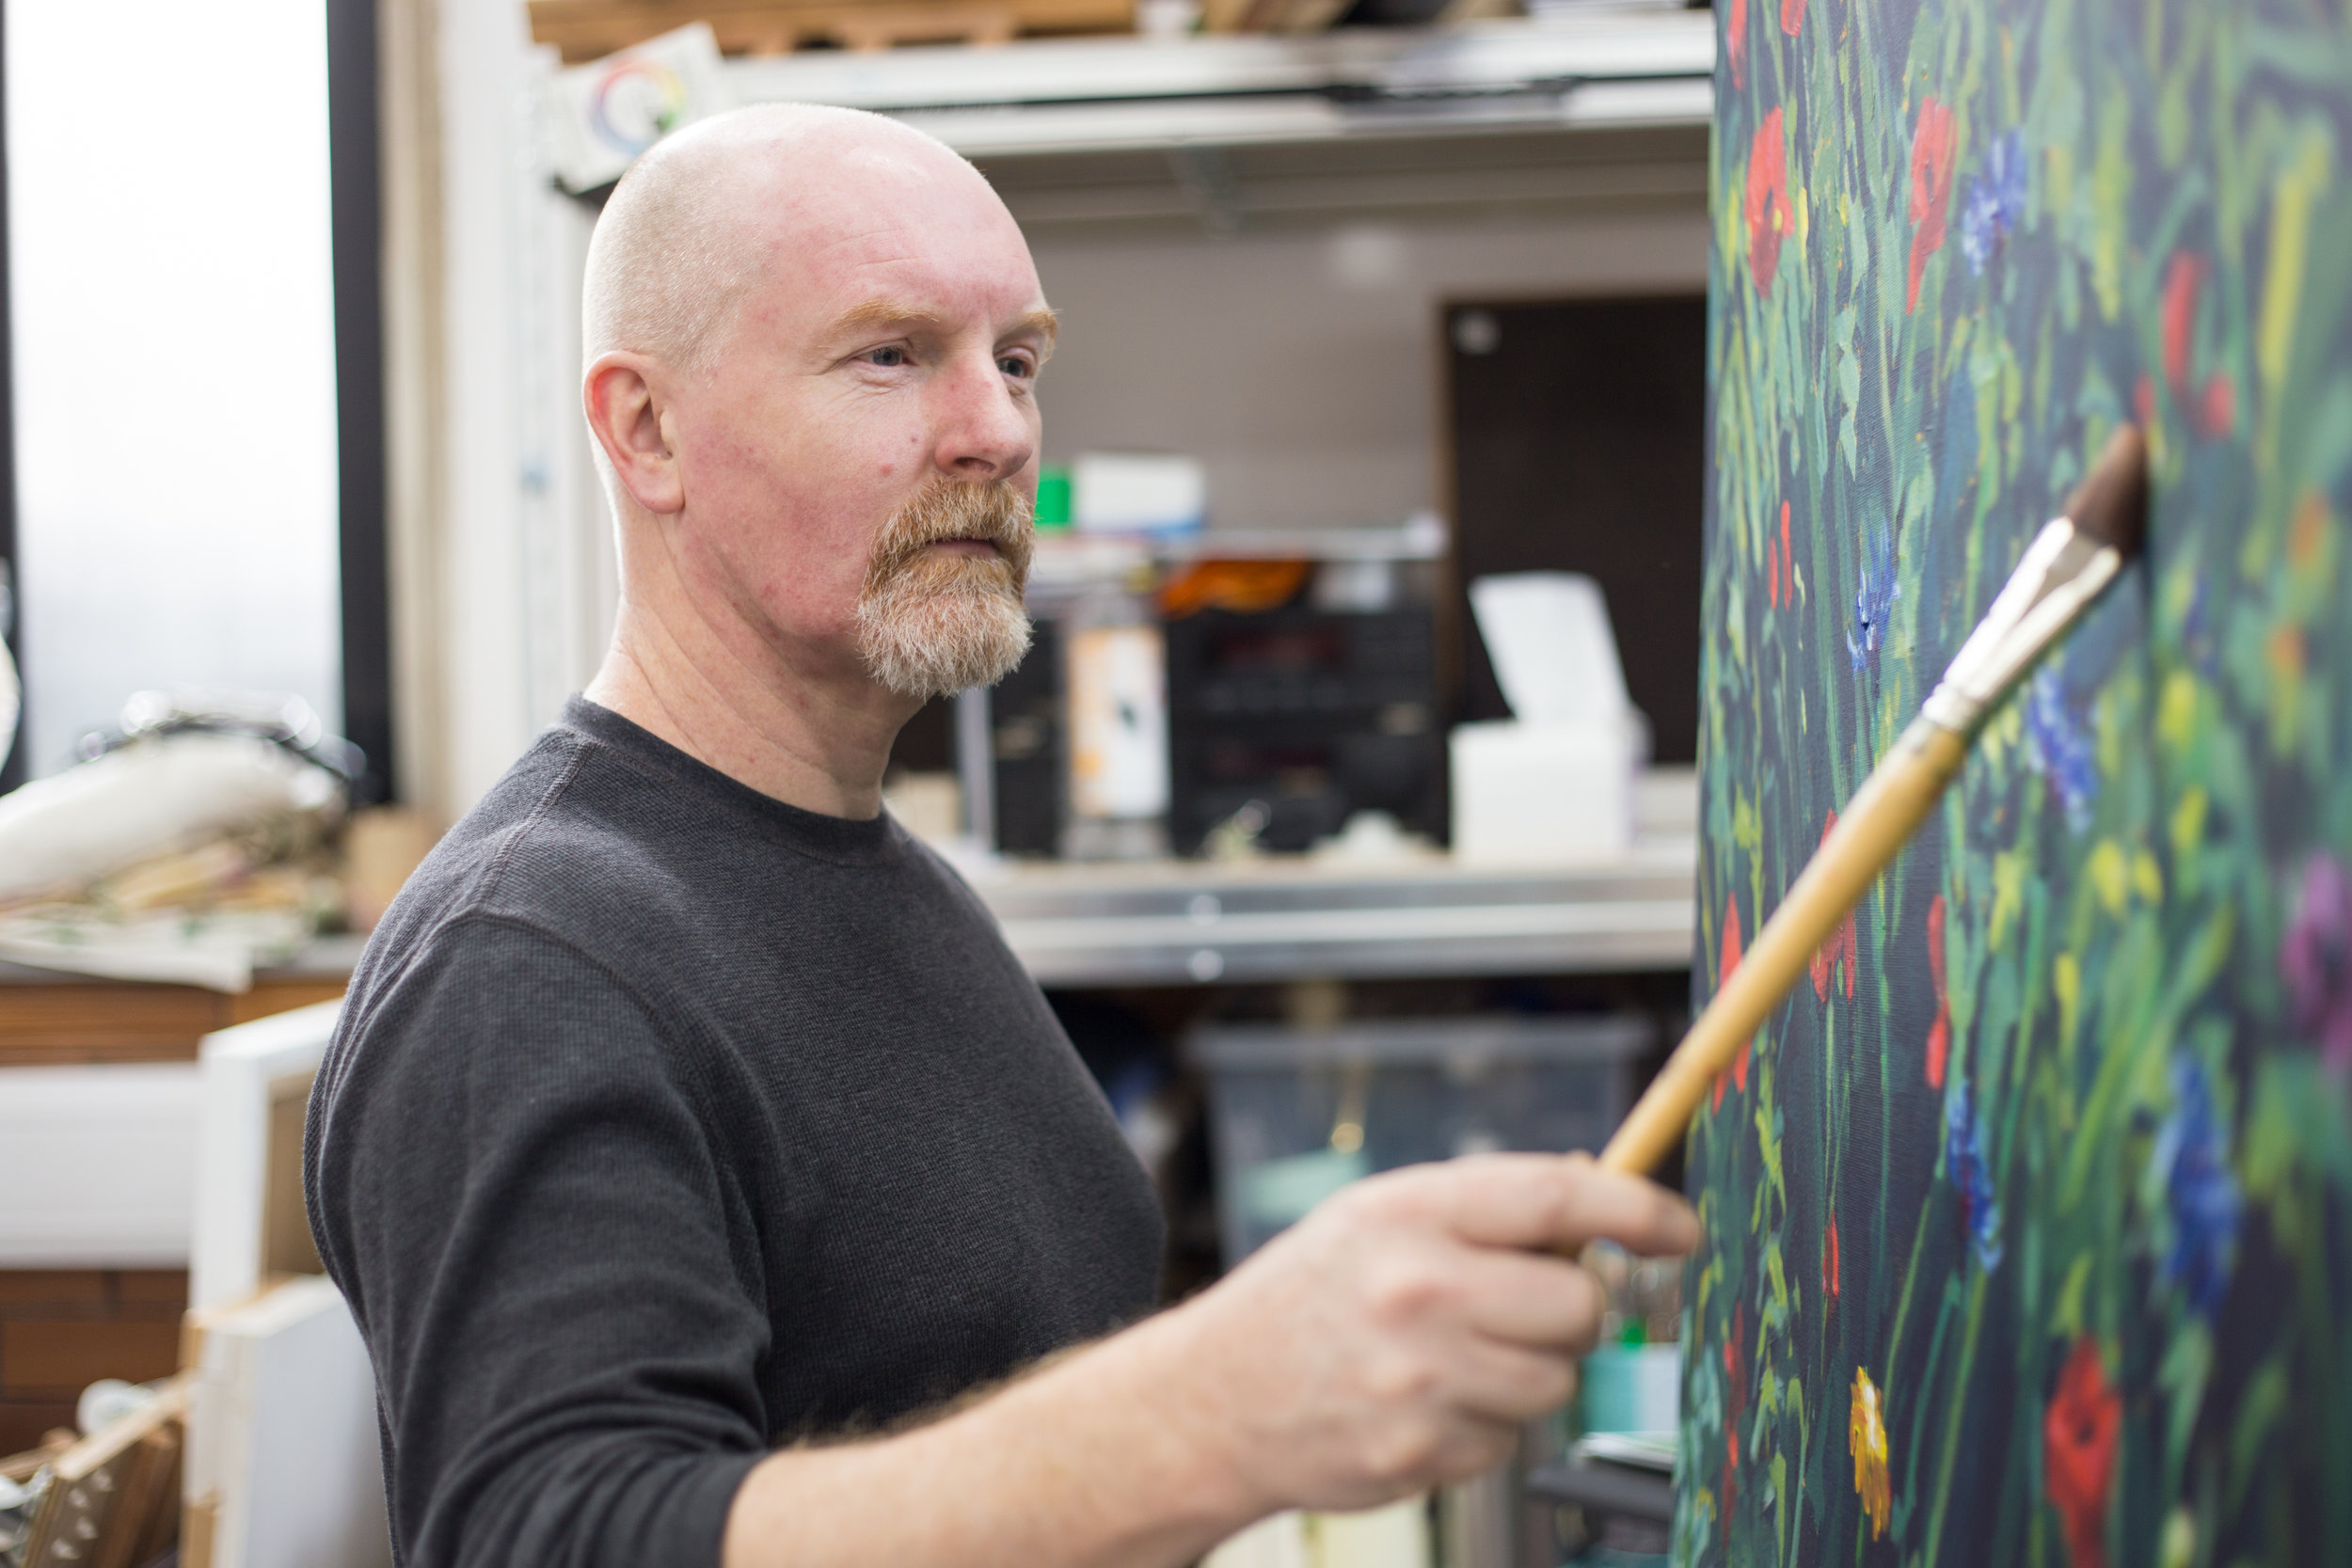 Wallspace Visual Arts - JOHN IS A VISUAL ARTIST WHO EXPLORES HUMAN FIGURES AND STILL LIFE IN HIS WORK. IT MAINLY TENDS TO INCLUDE USING PAINT ON A FLAT SURFACE, HOWEVER HE ALSO ENJOYS DOING 3D SCULPTURE WORK.